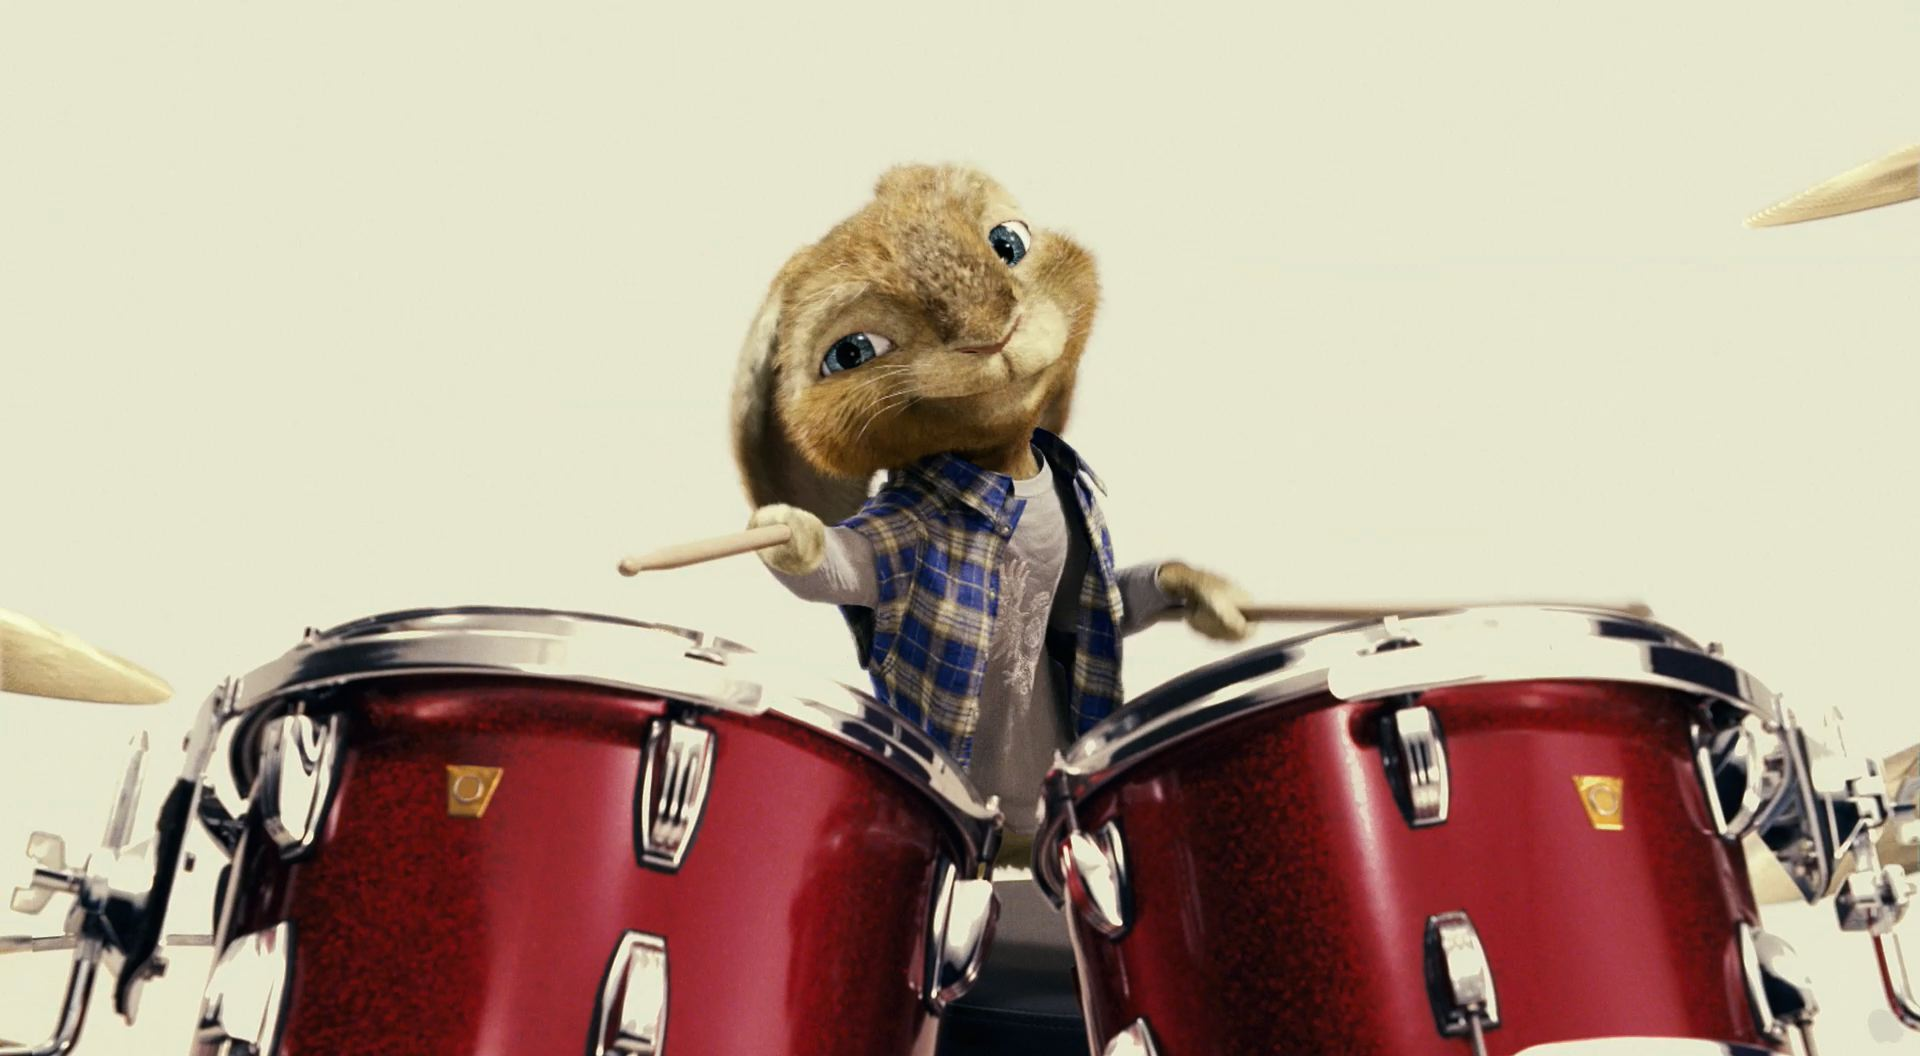 Easter-Bunny-drums-Hop-Movie-Wallpaper-8